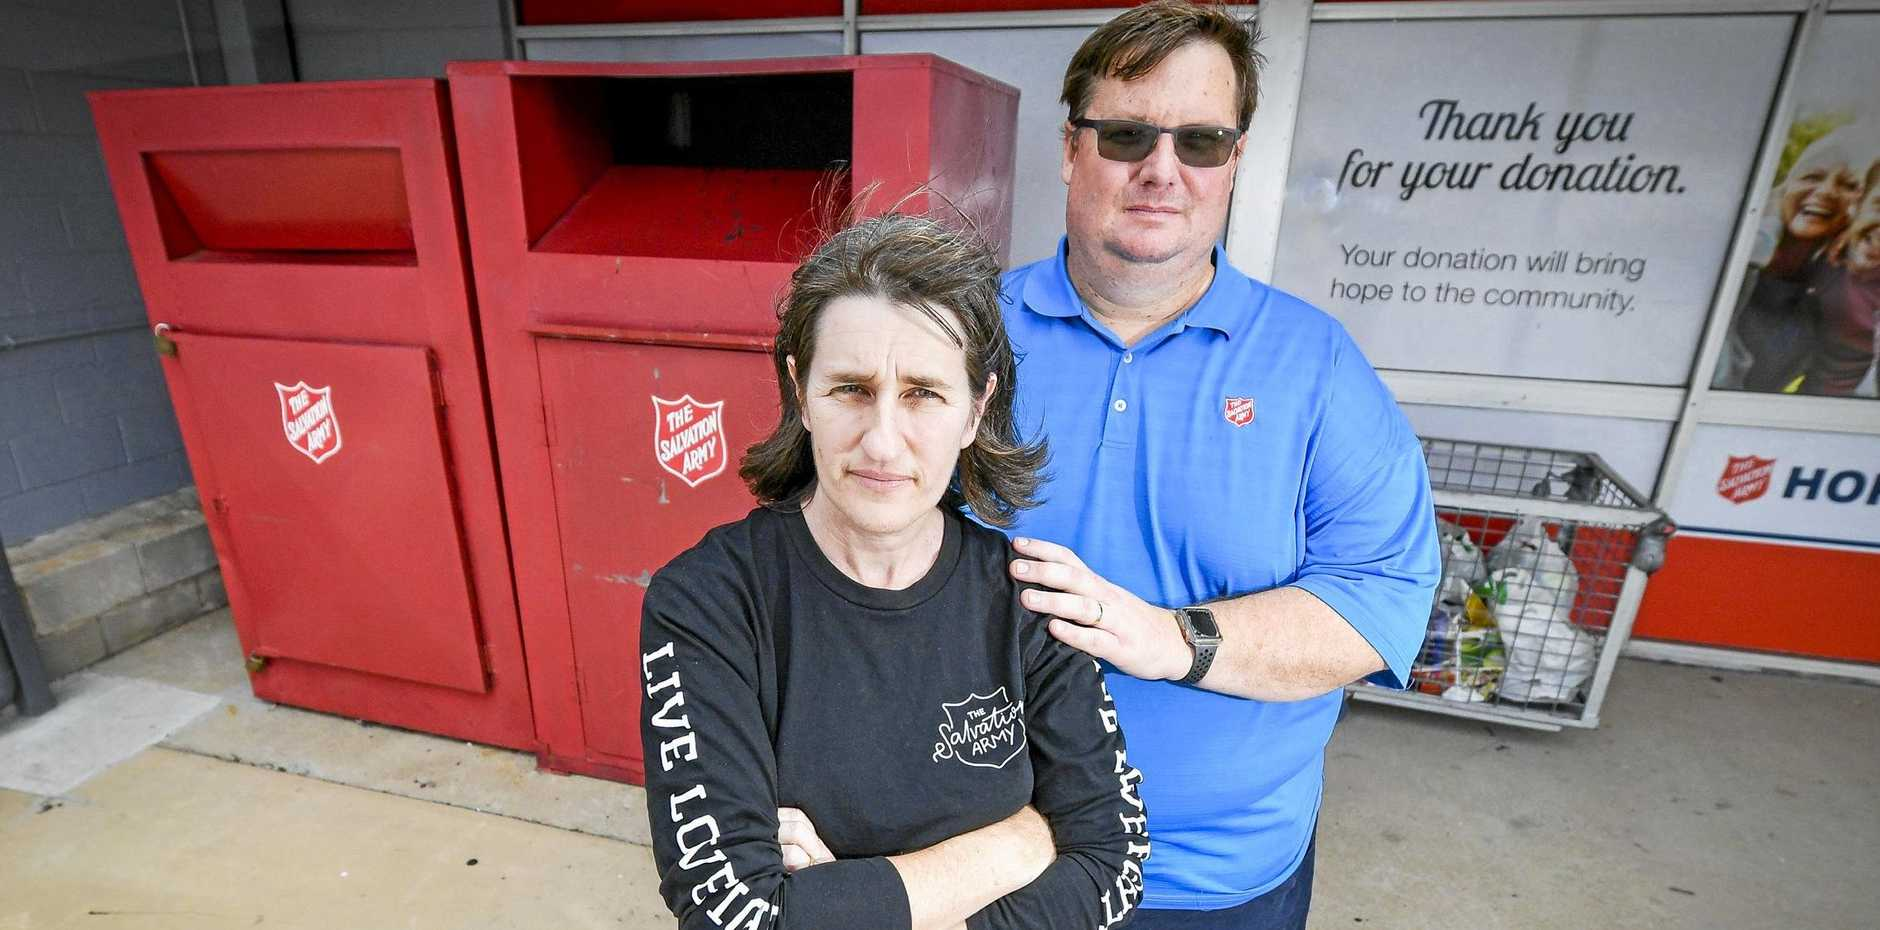 DONATIONS DESTROYED: Salvation Army's Kay and Chris Ford say donation bins are being trashed during weekends, with people even caught defecating and urinating on donated items.